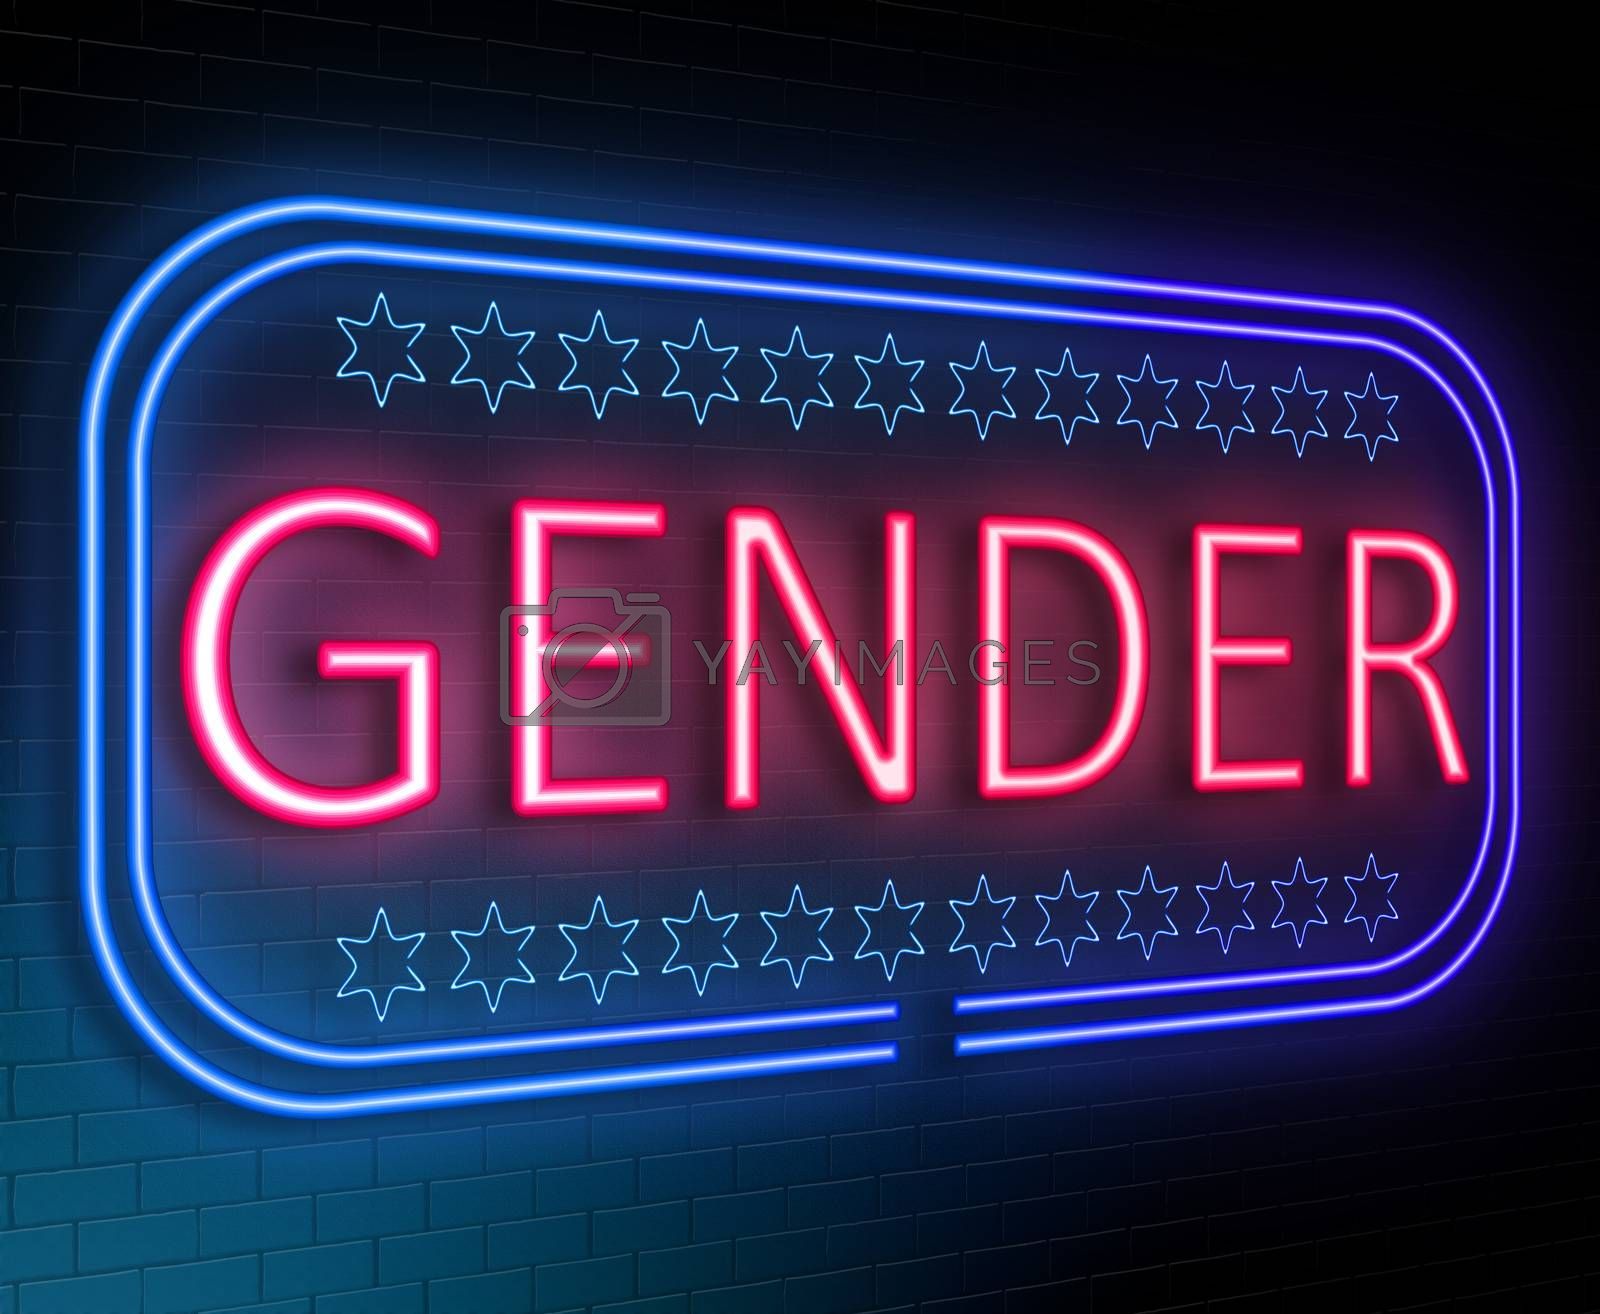 Illustration depicting an illuminated neon sign with a gender concept.